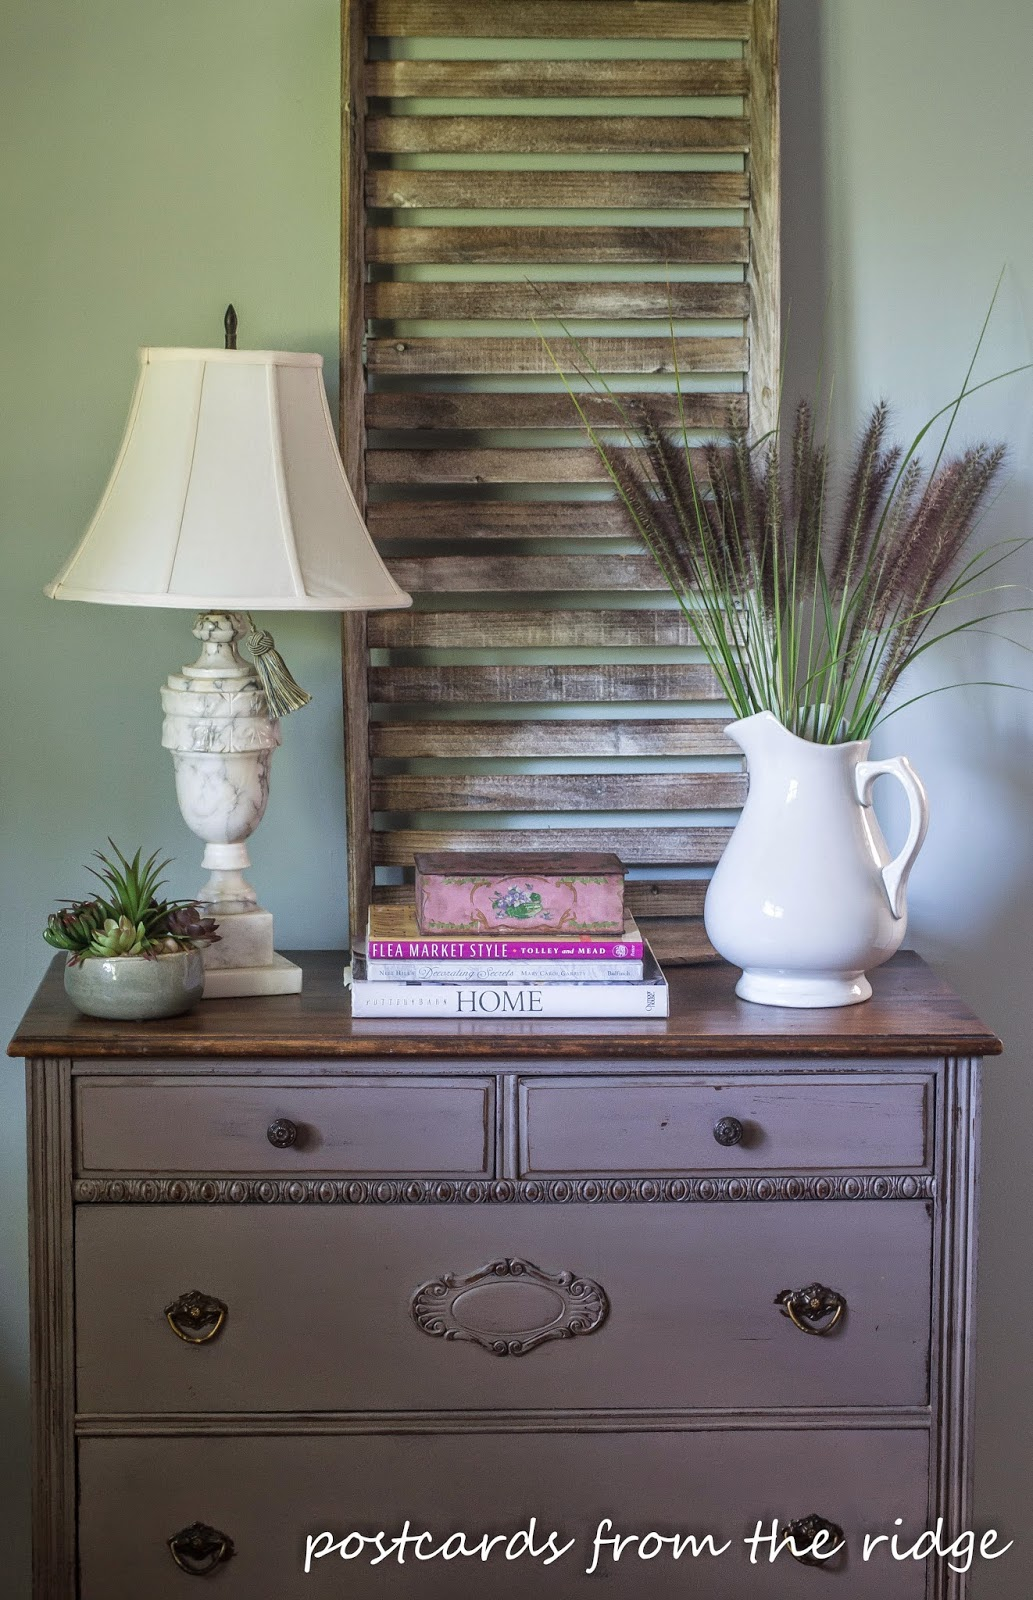 Using vintage ironstone, alabaster, and painted furniture in your decor